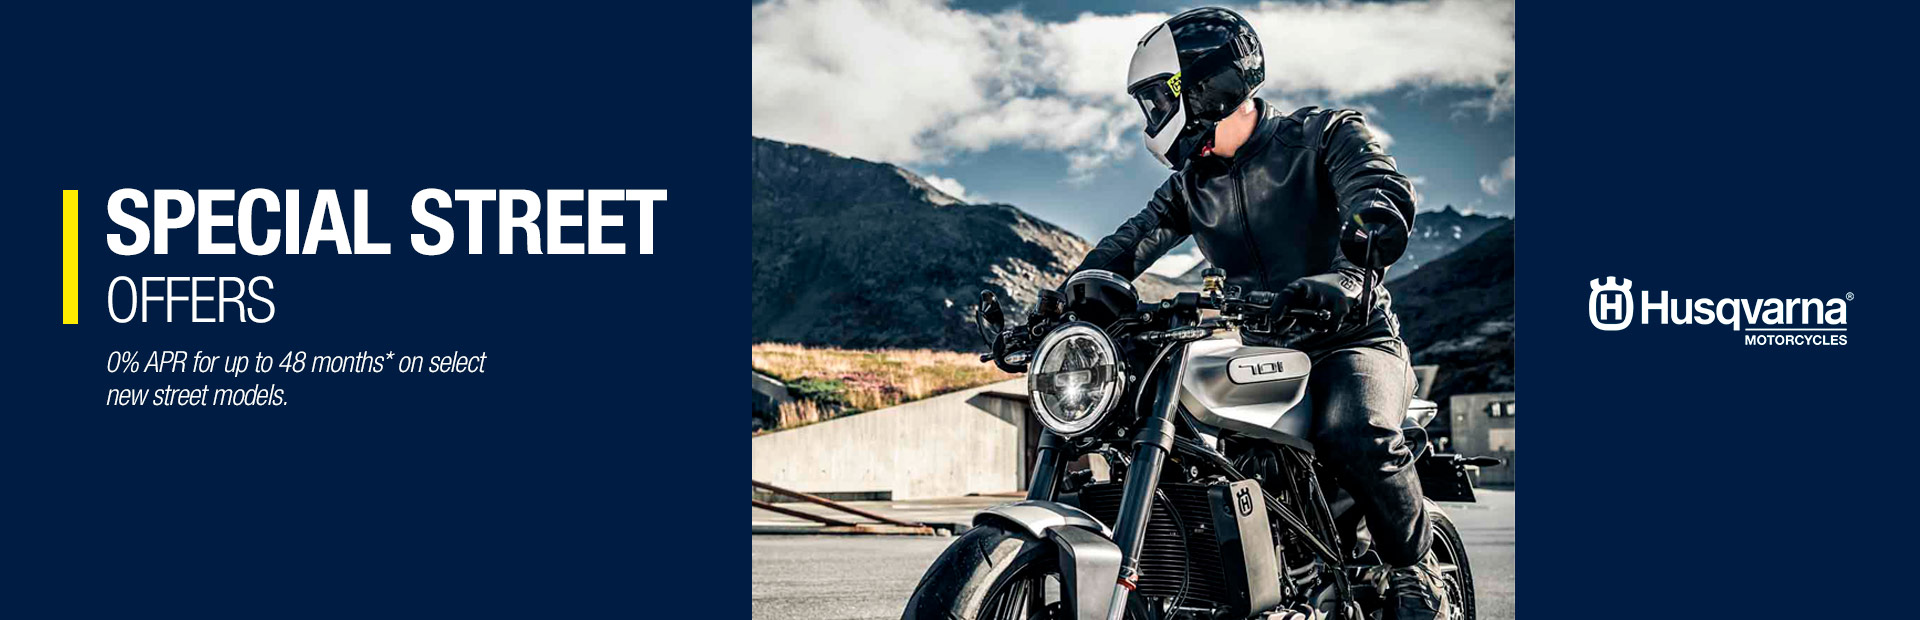 Husqvarna Motorcycles: SPECIAL STREET OFFERS